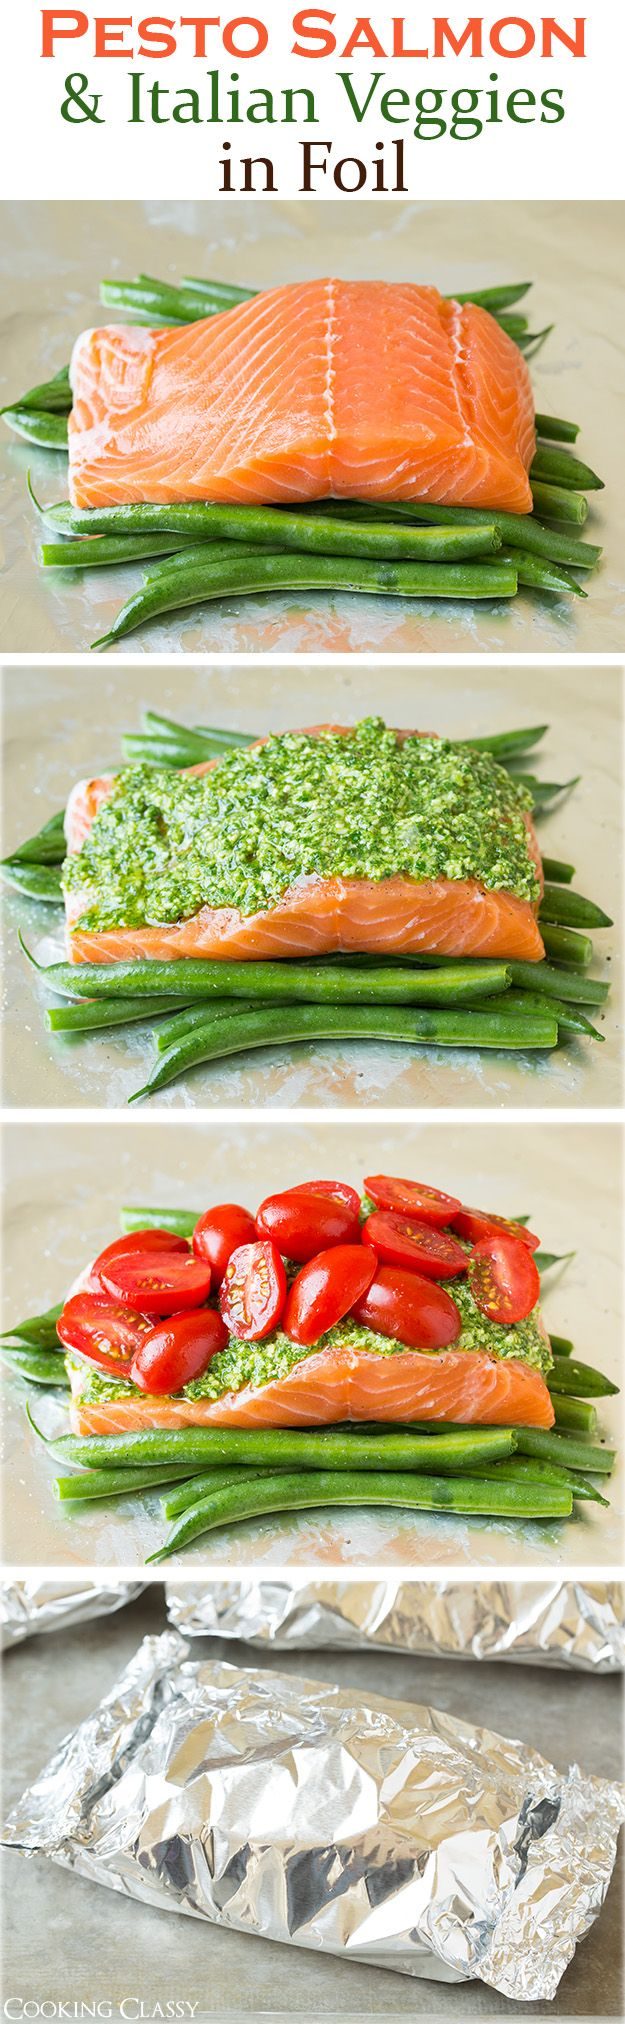 Pesto Salmon and Italian Veggies in Foil – this is an easy, flavorful dinner that is sure to please! So delicious!